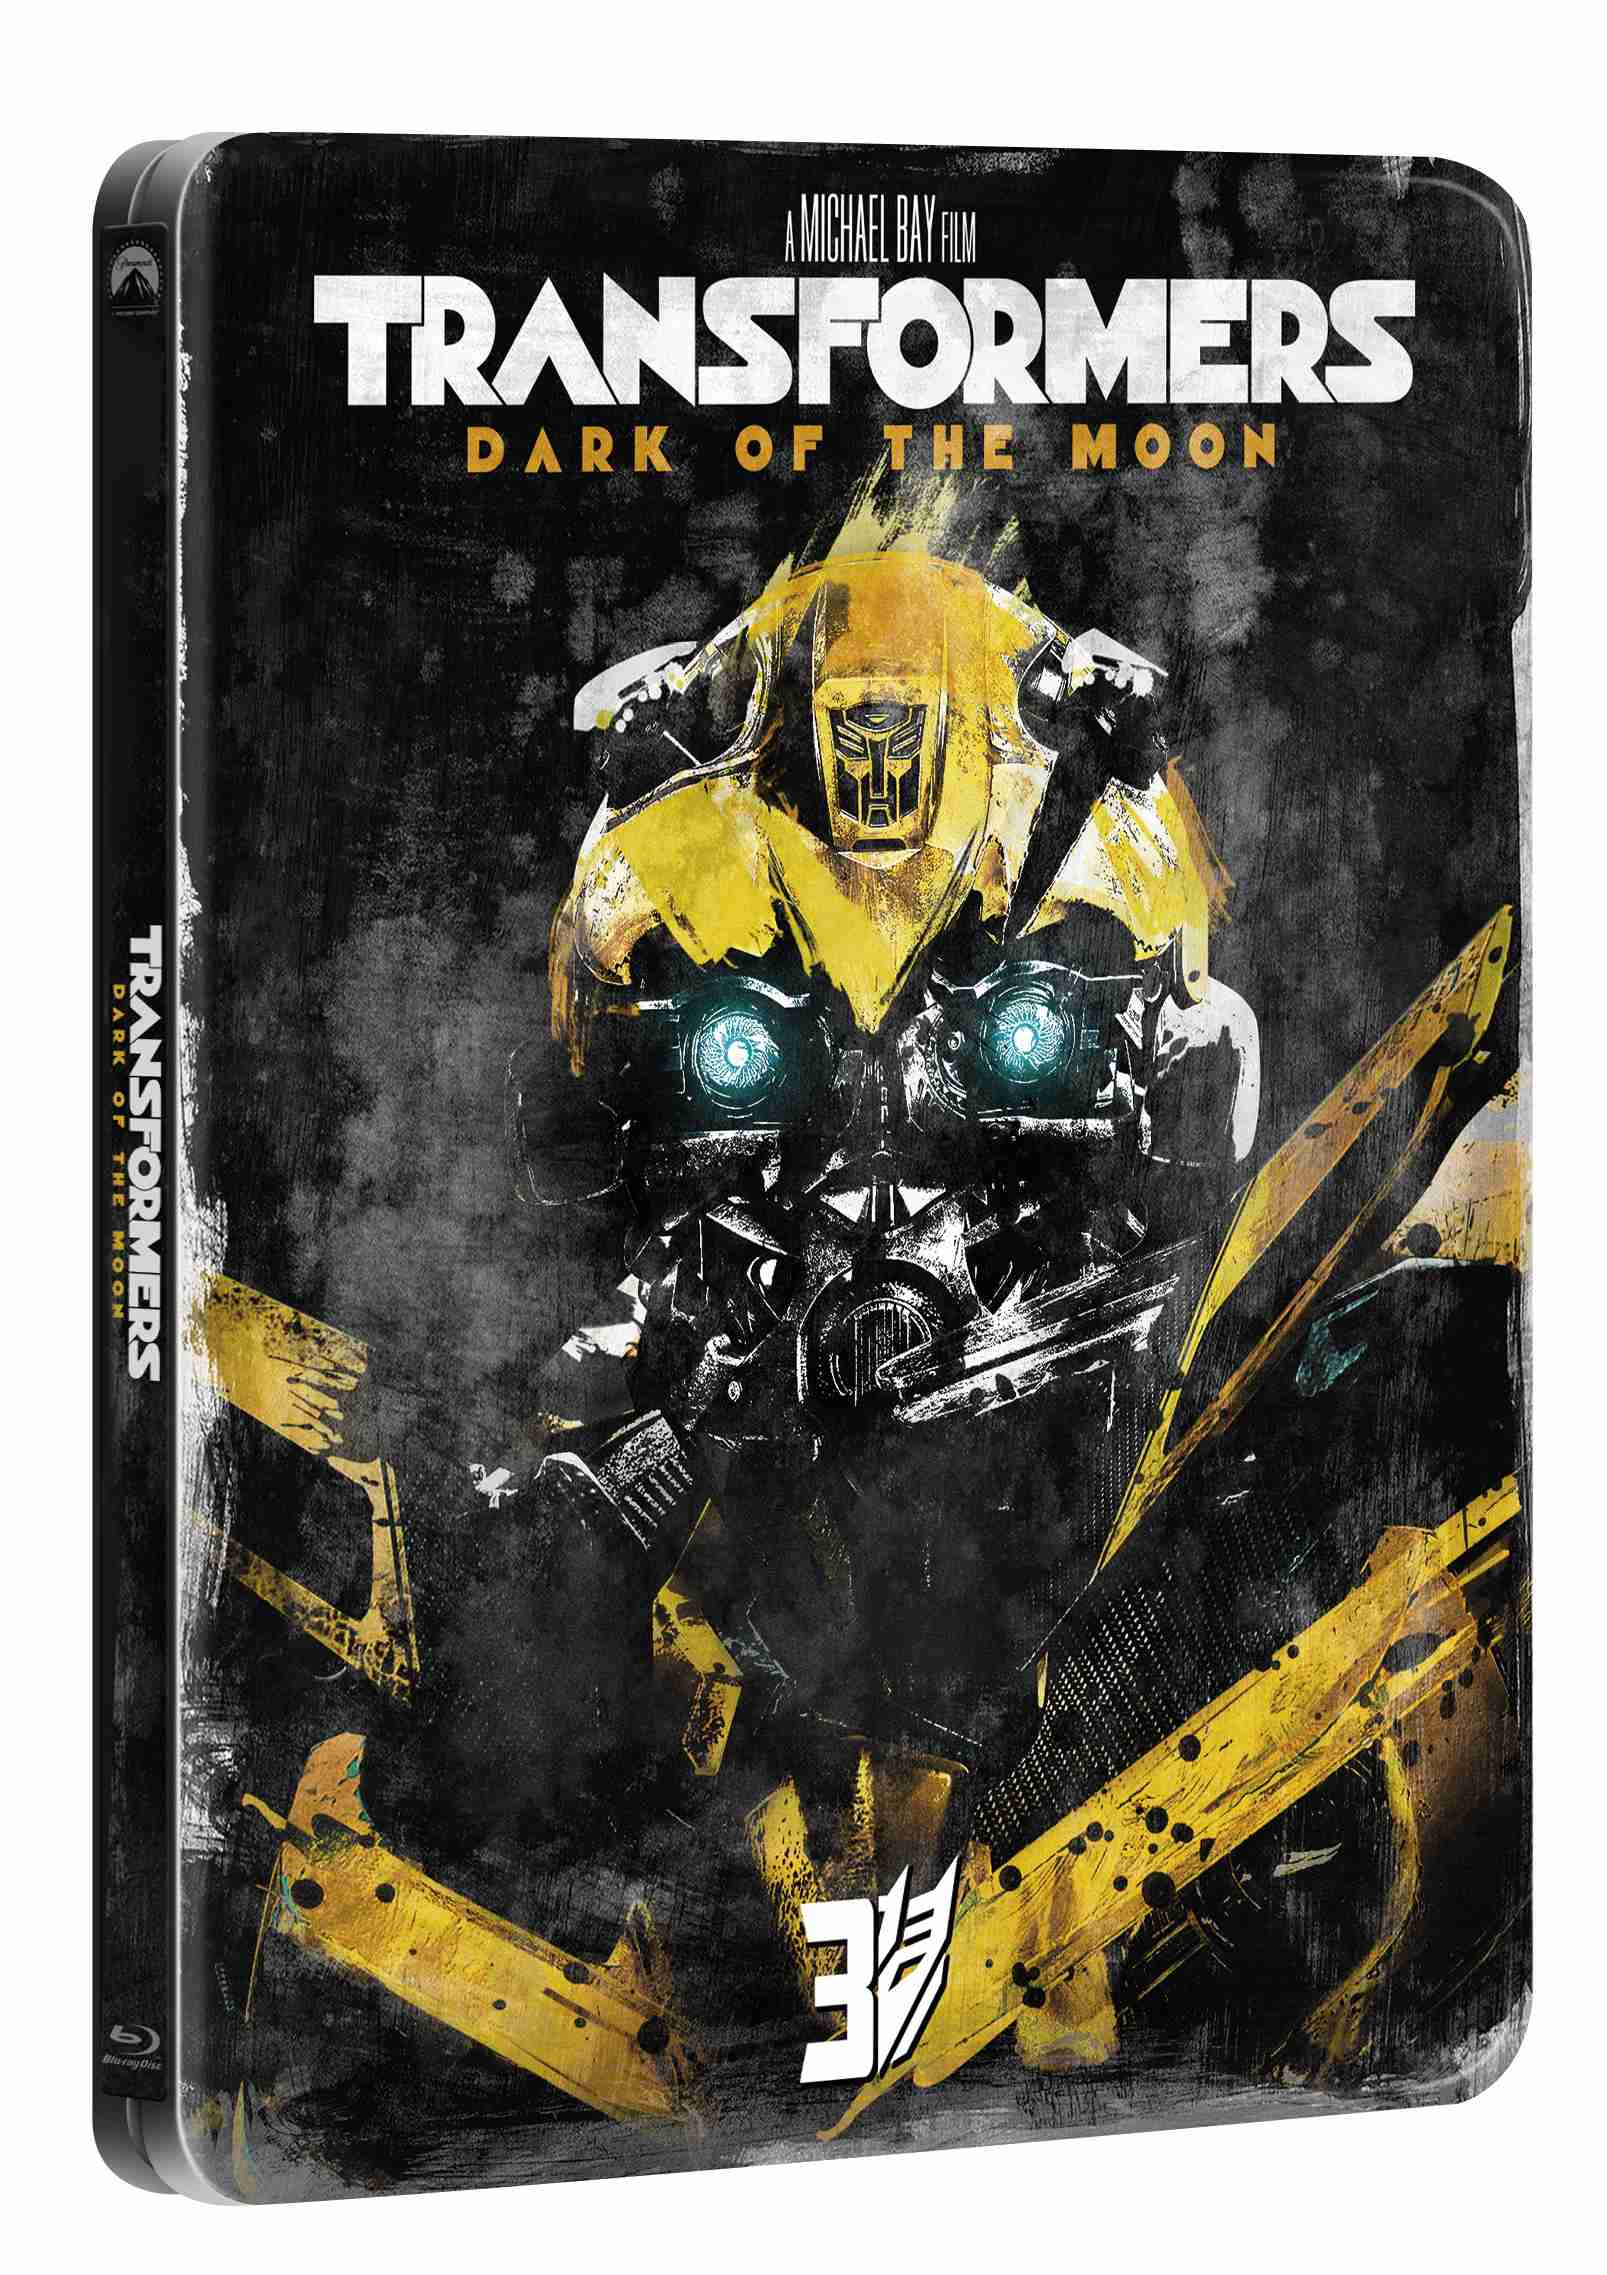 TRANSFORMERS 3 (Edice 10 let) - Blu-ray STEELBOOK